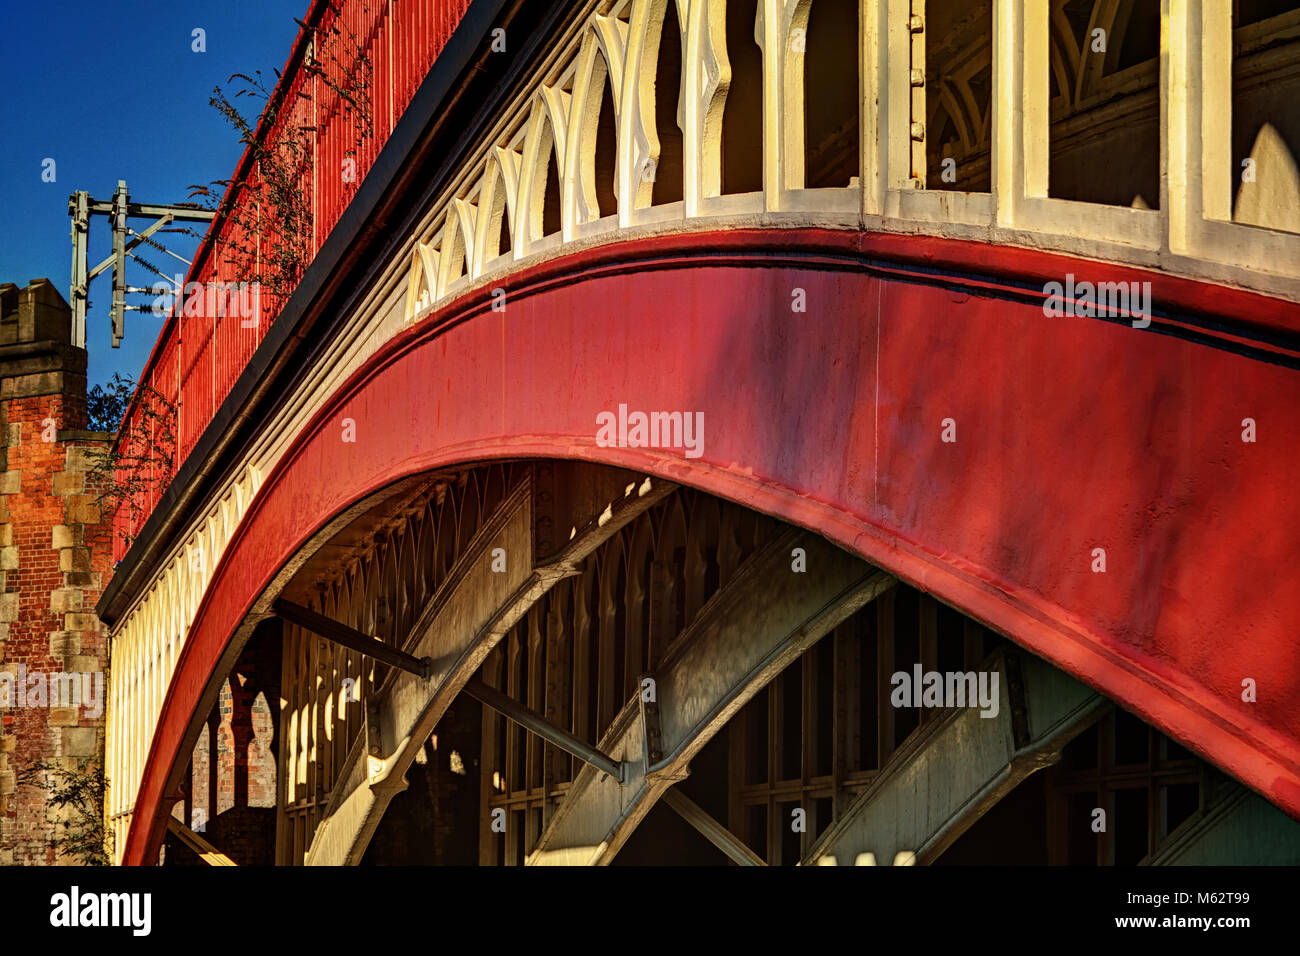 Arches of strength. A bridge spanning the Rochdale Canal in Castlefield, Manchester - Stock Image